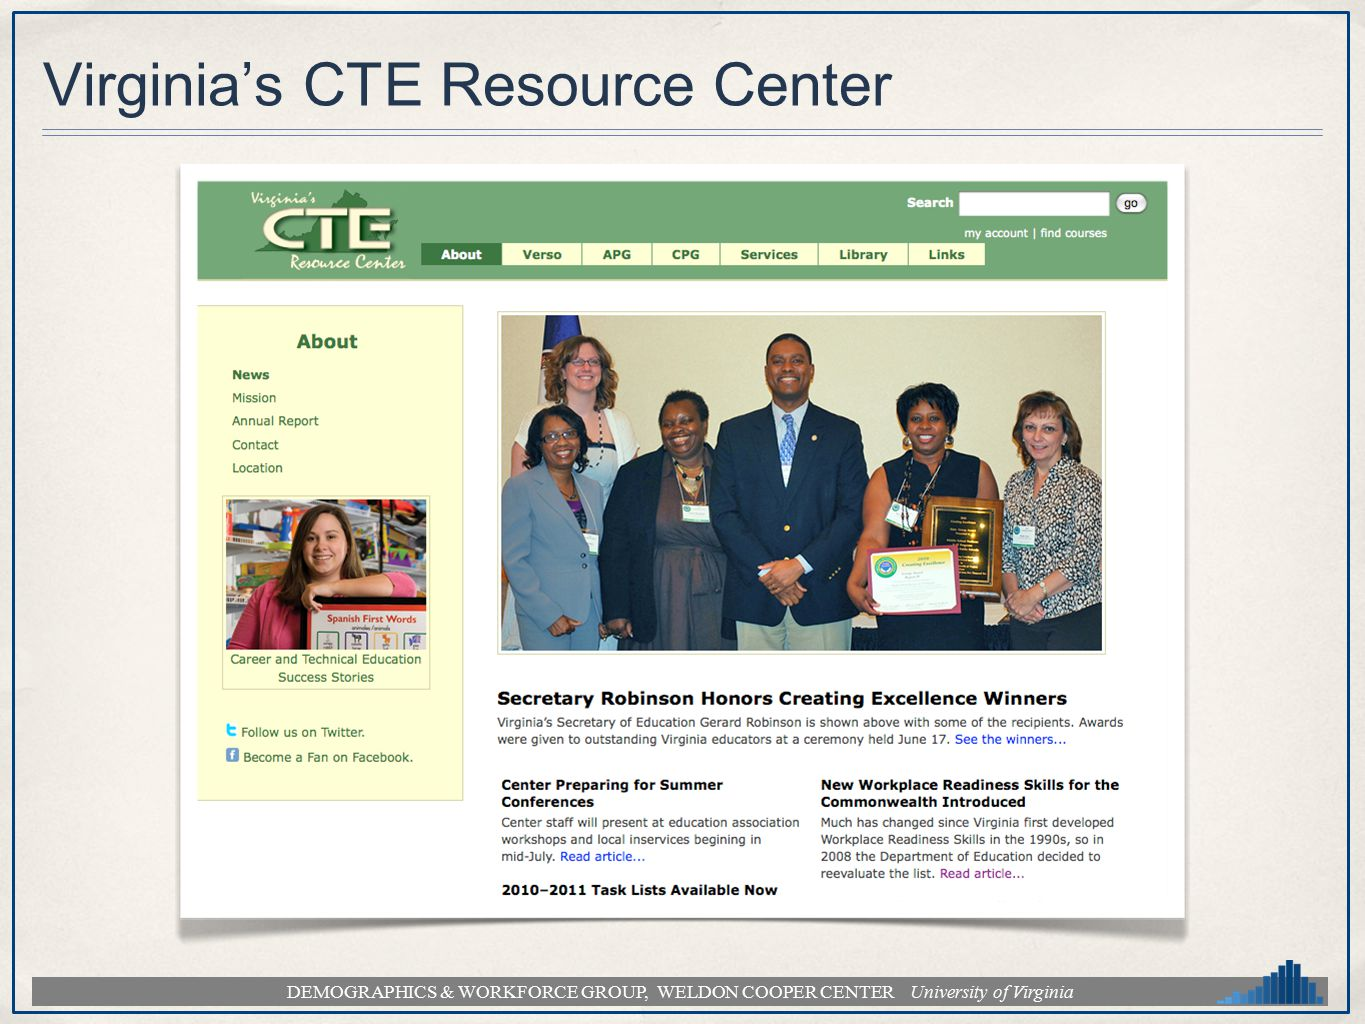 DEMOGRAPHICS & WORKFORCE GROUP, WELDON COOPER CENTER University of Virginia Virginia's CTE Resource Center